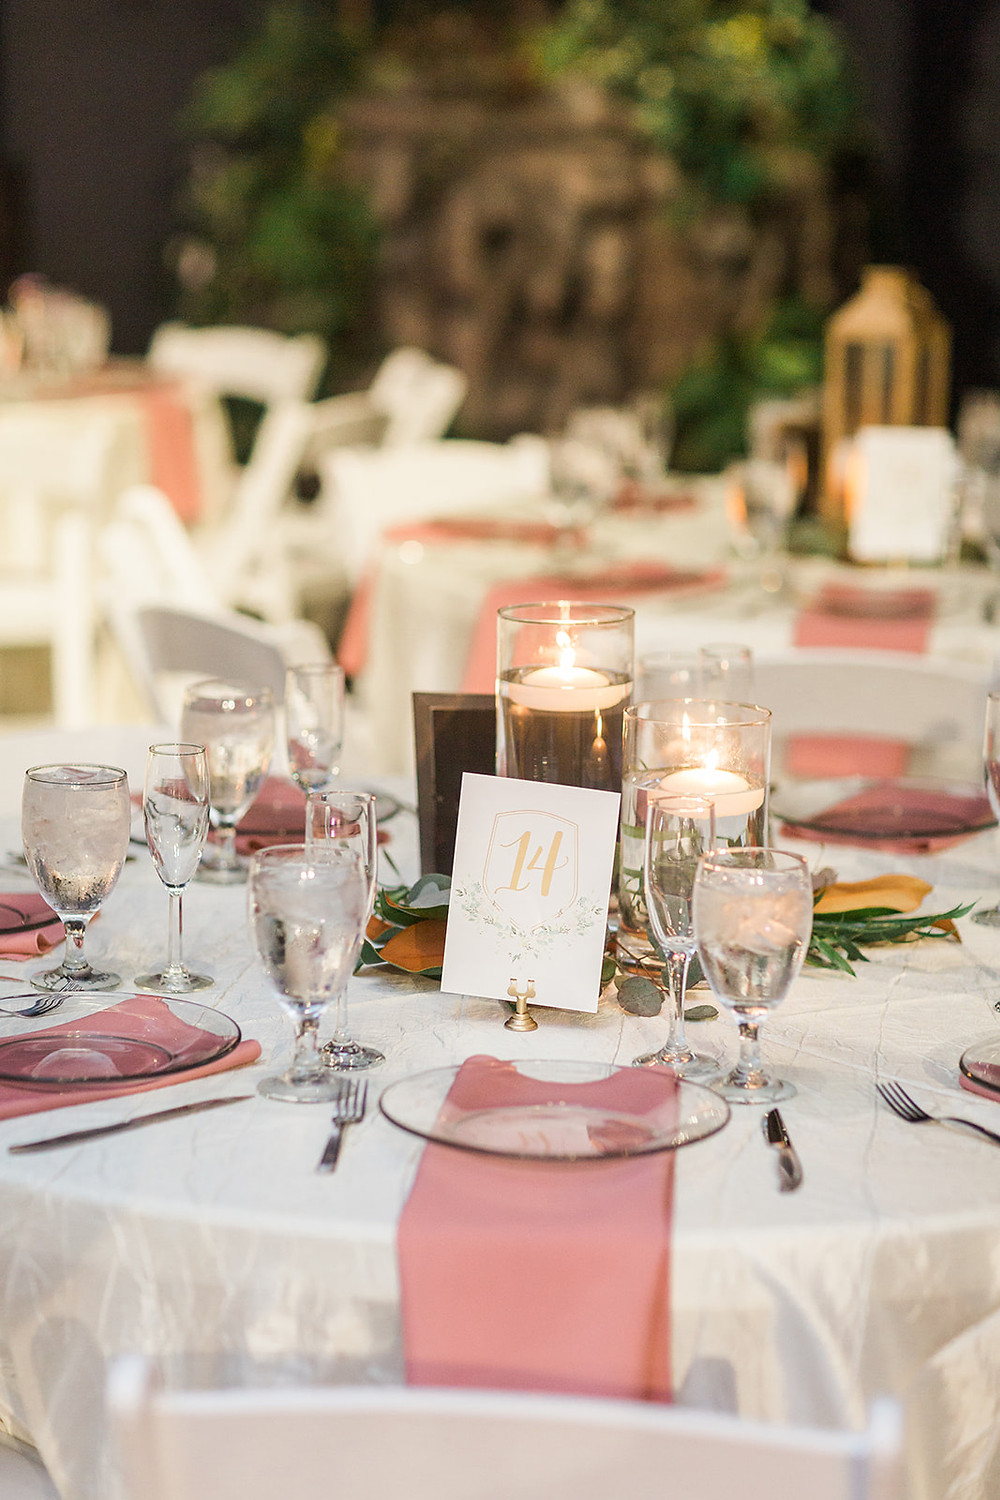 Table decor and custom table number